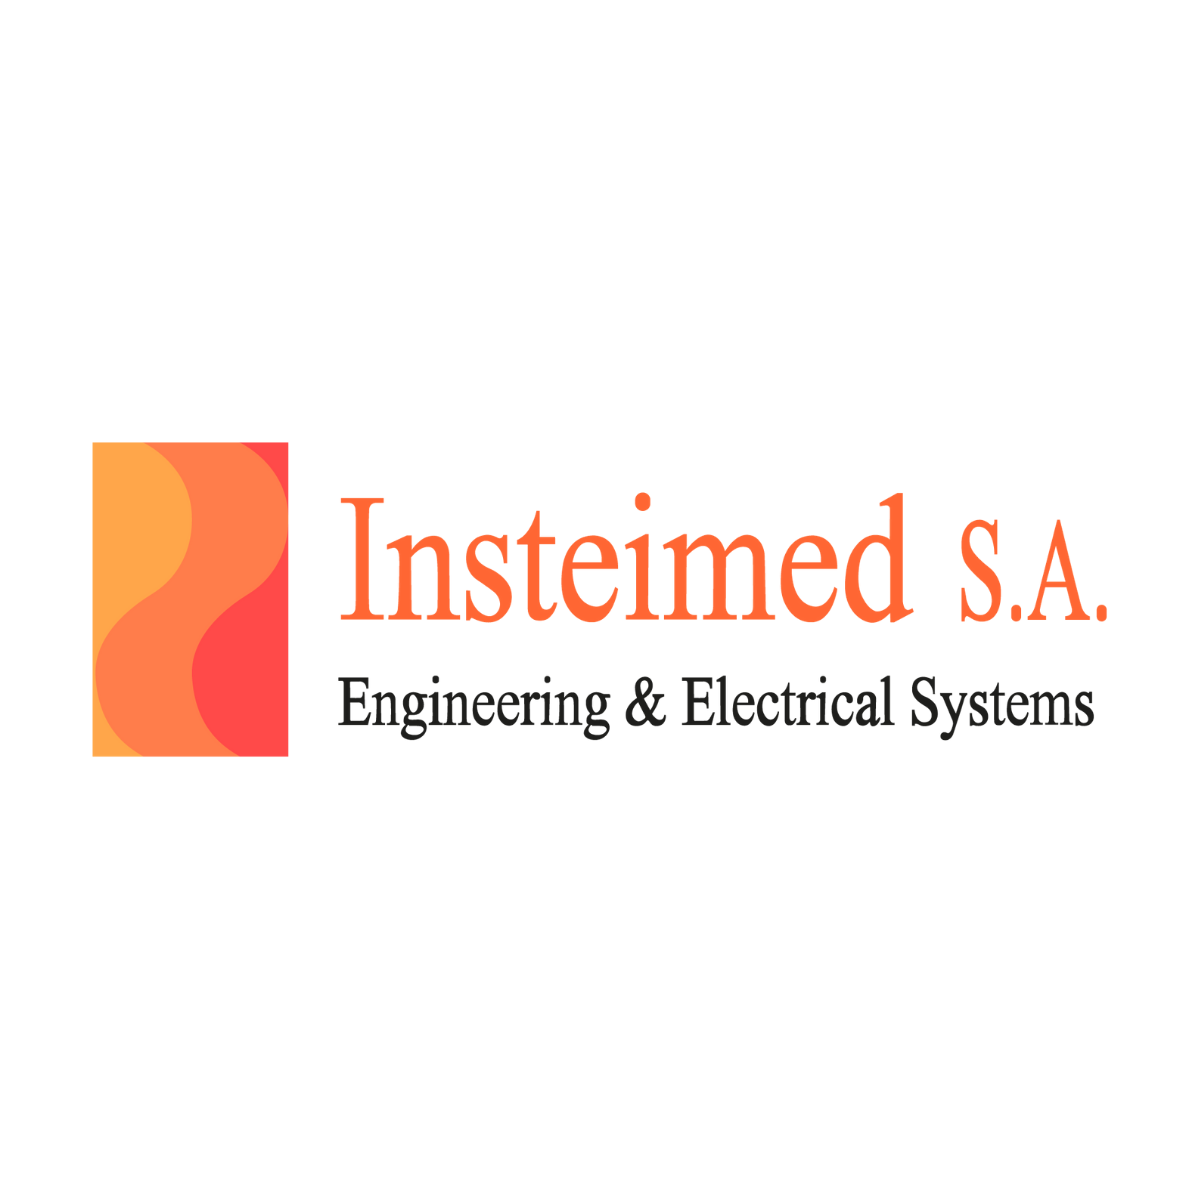 Insteimed S.A engineering and electrical systems